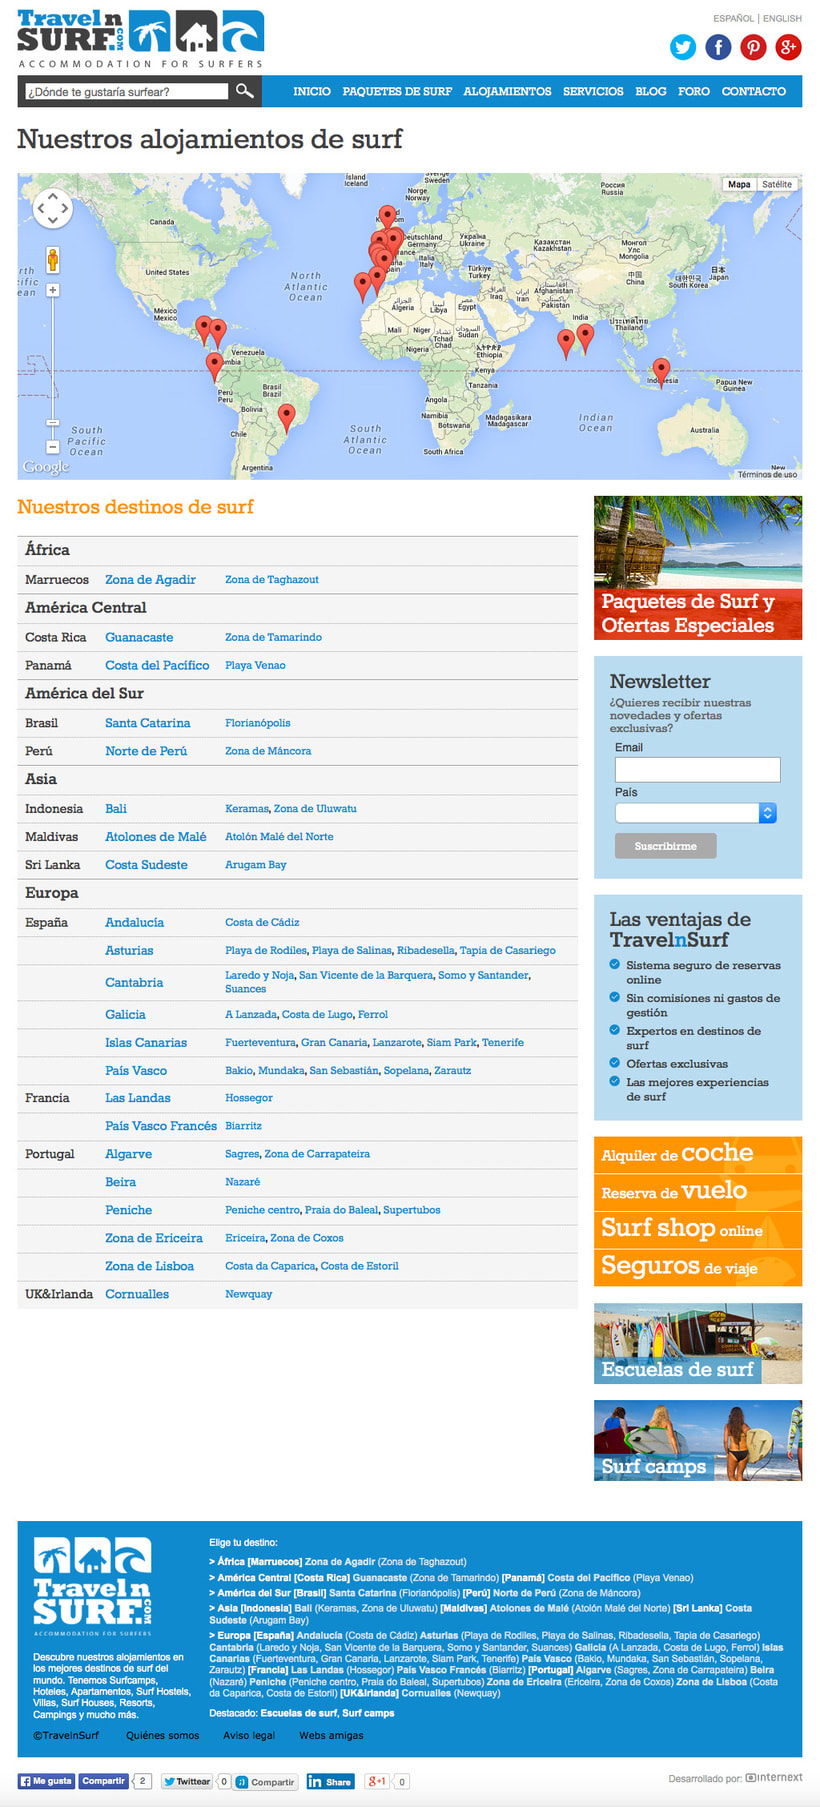 Web TravelnSURF 1